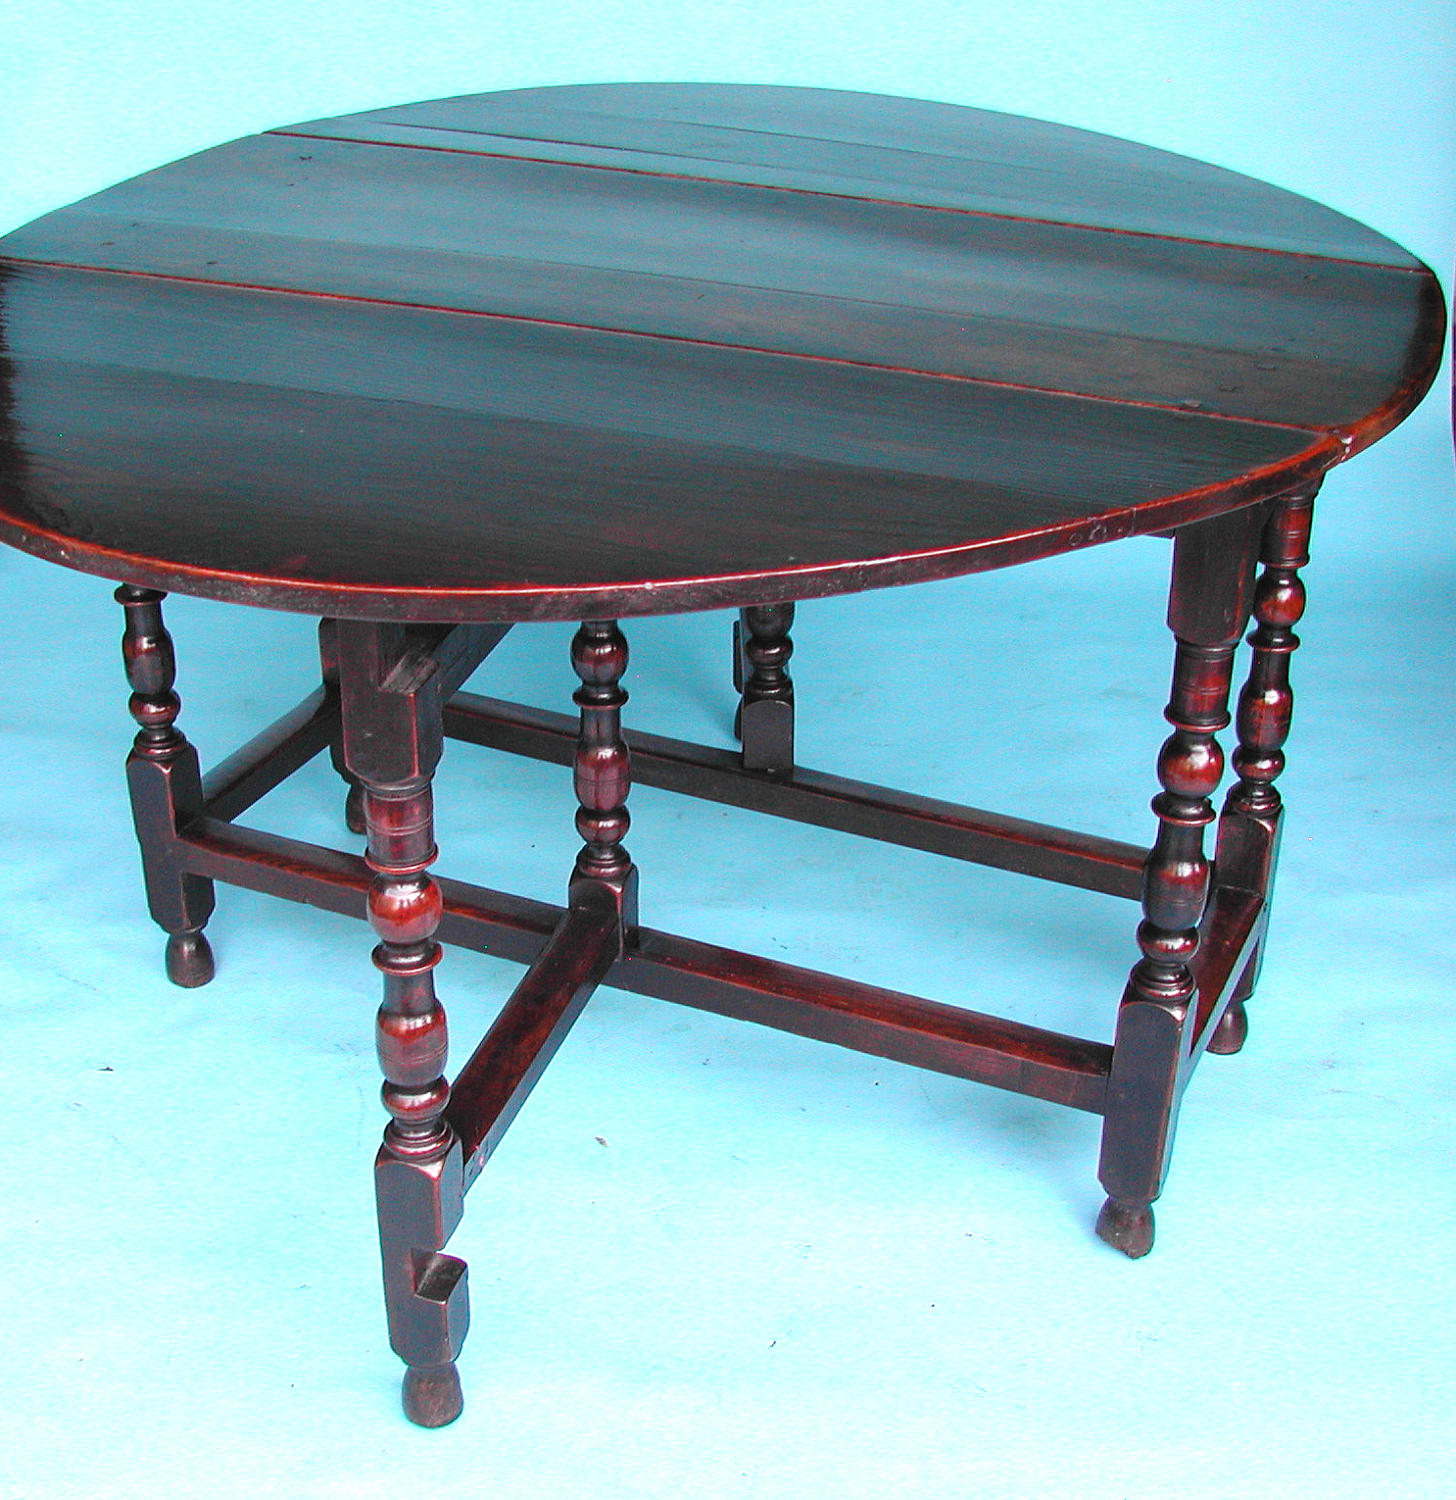 Antique 17thc Period Oak Gateleg Table.  English.  C1680-90.